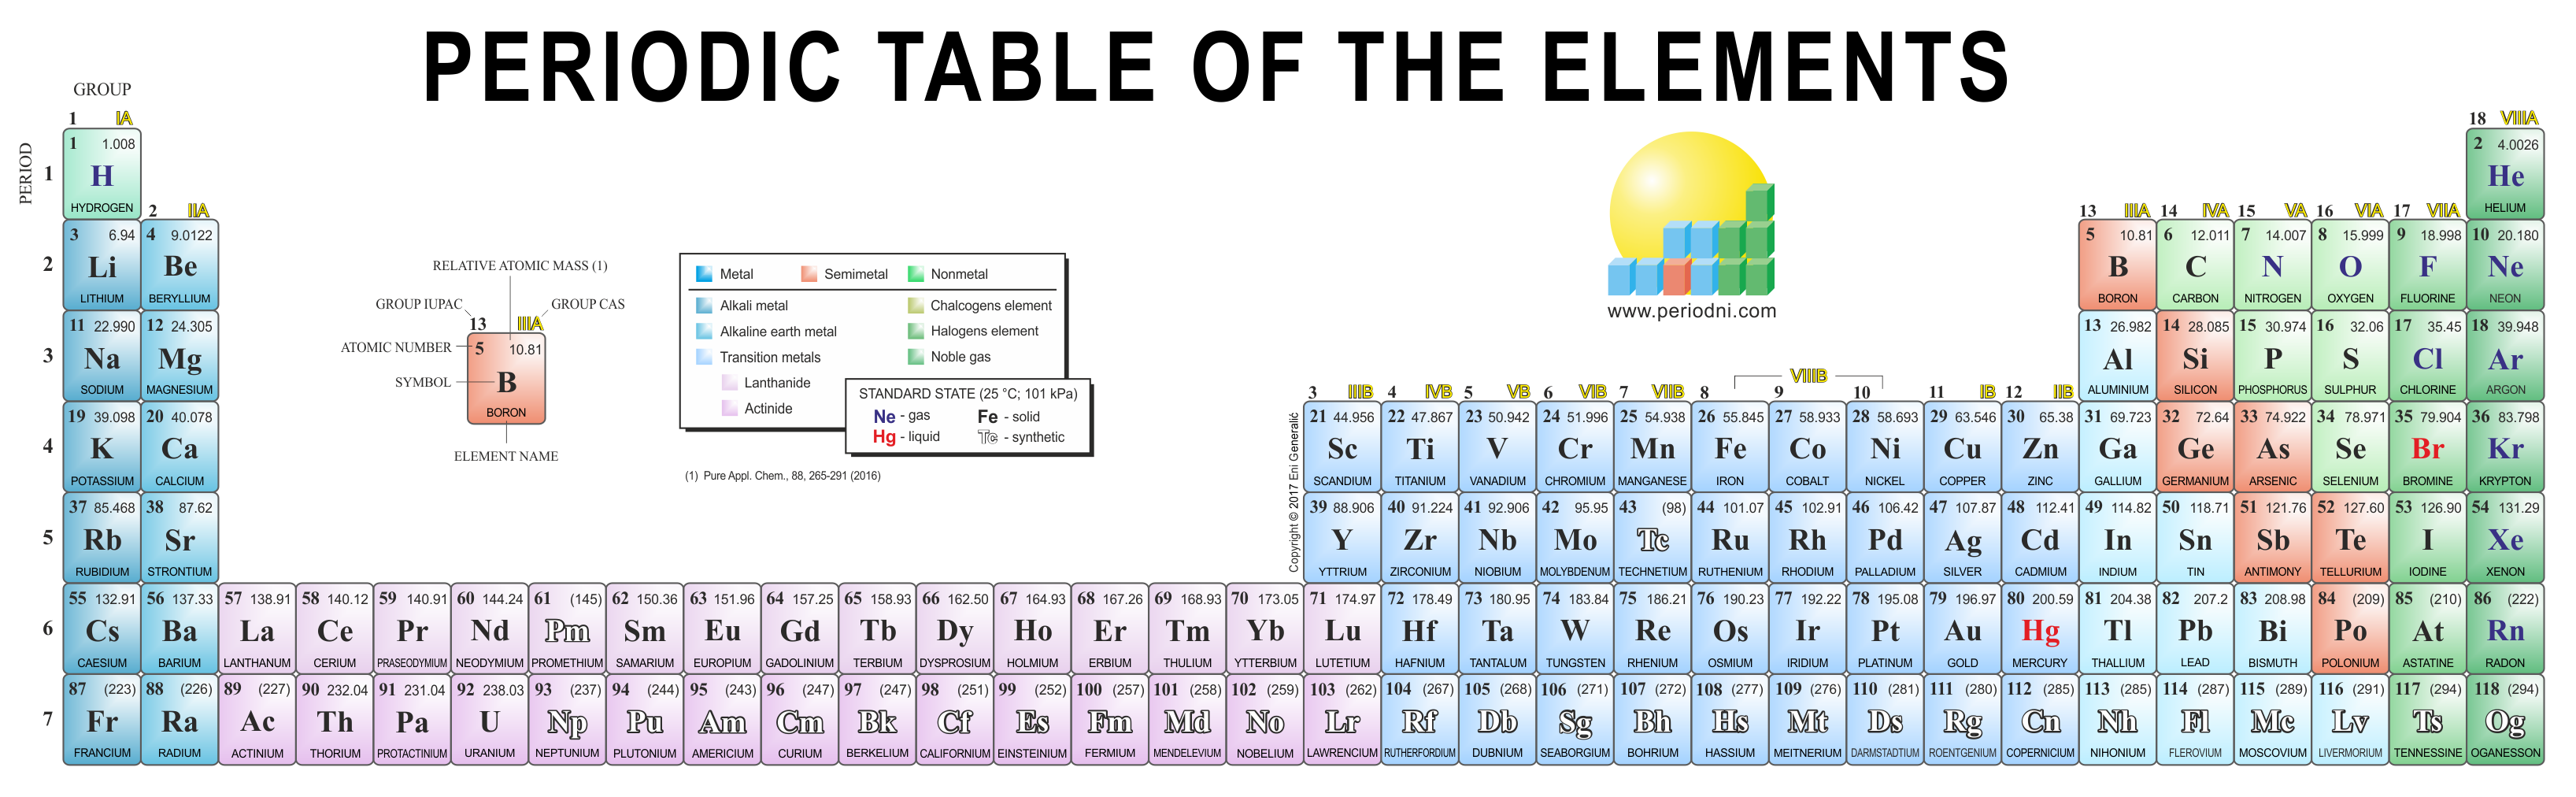 Chemistry images gallery 32 column periodic table gamestrikefo Images